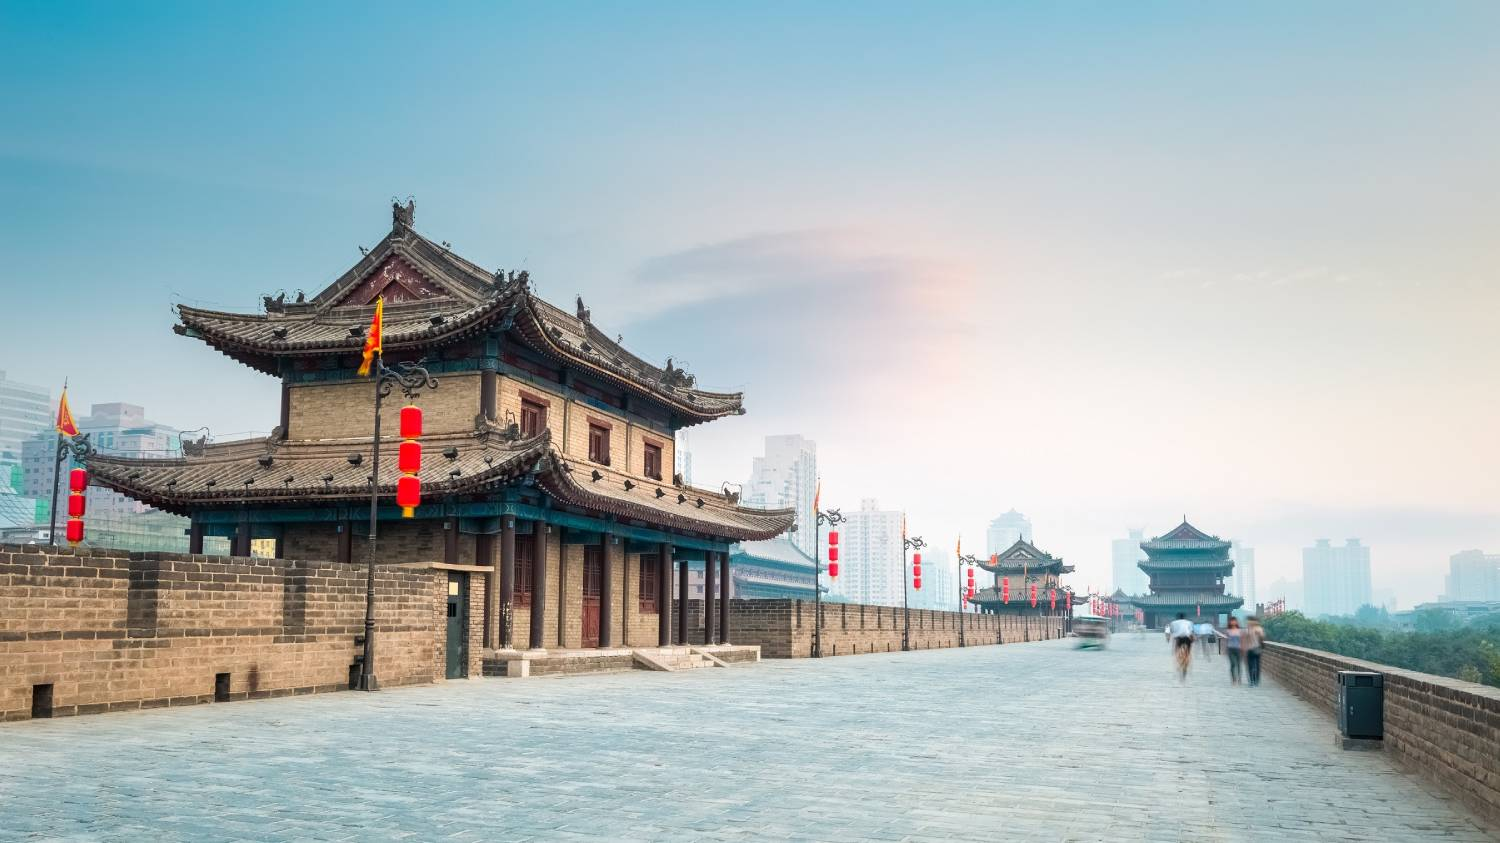 Xi'an - The Best Places To Visit In China